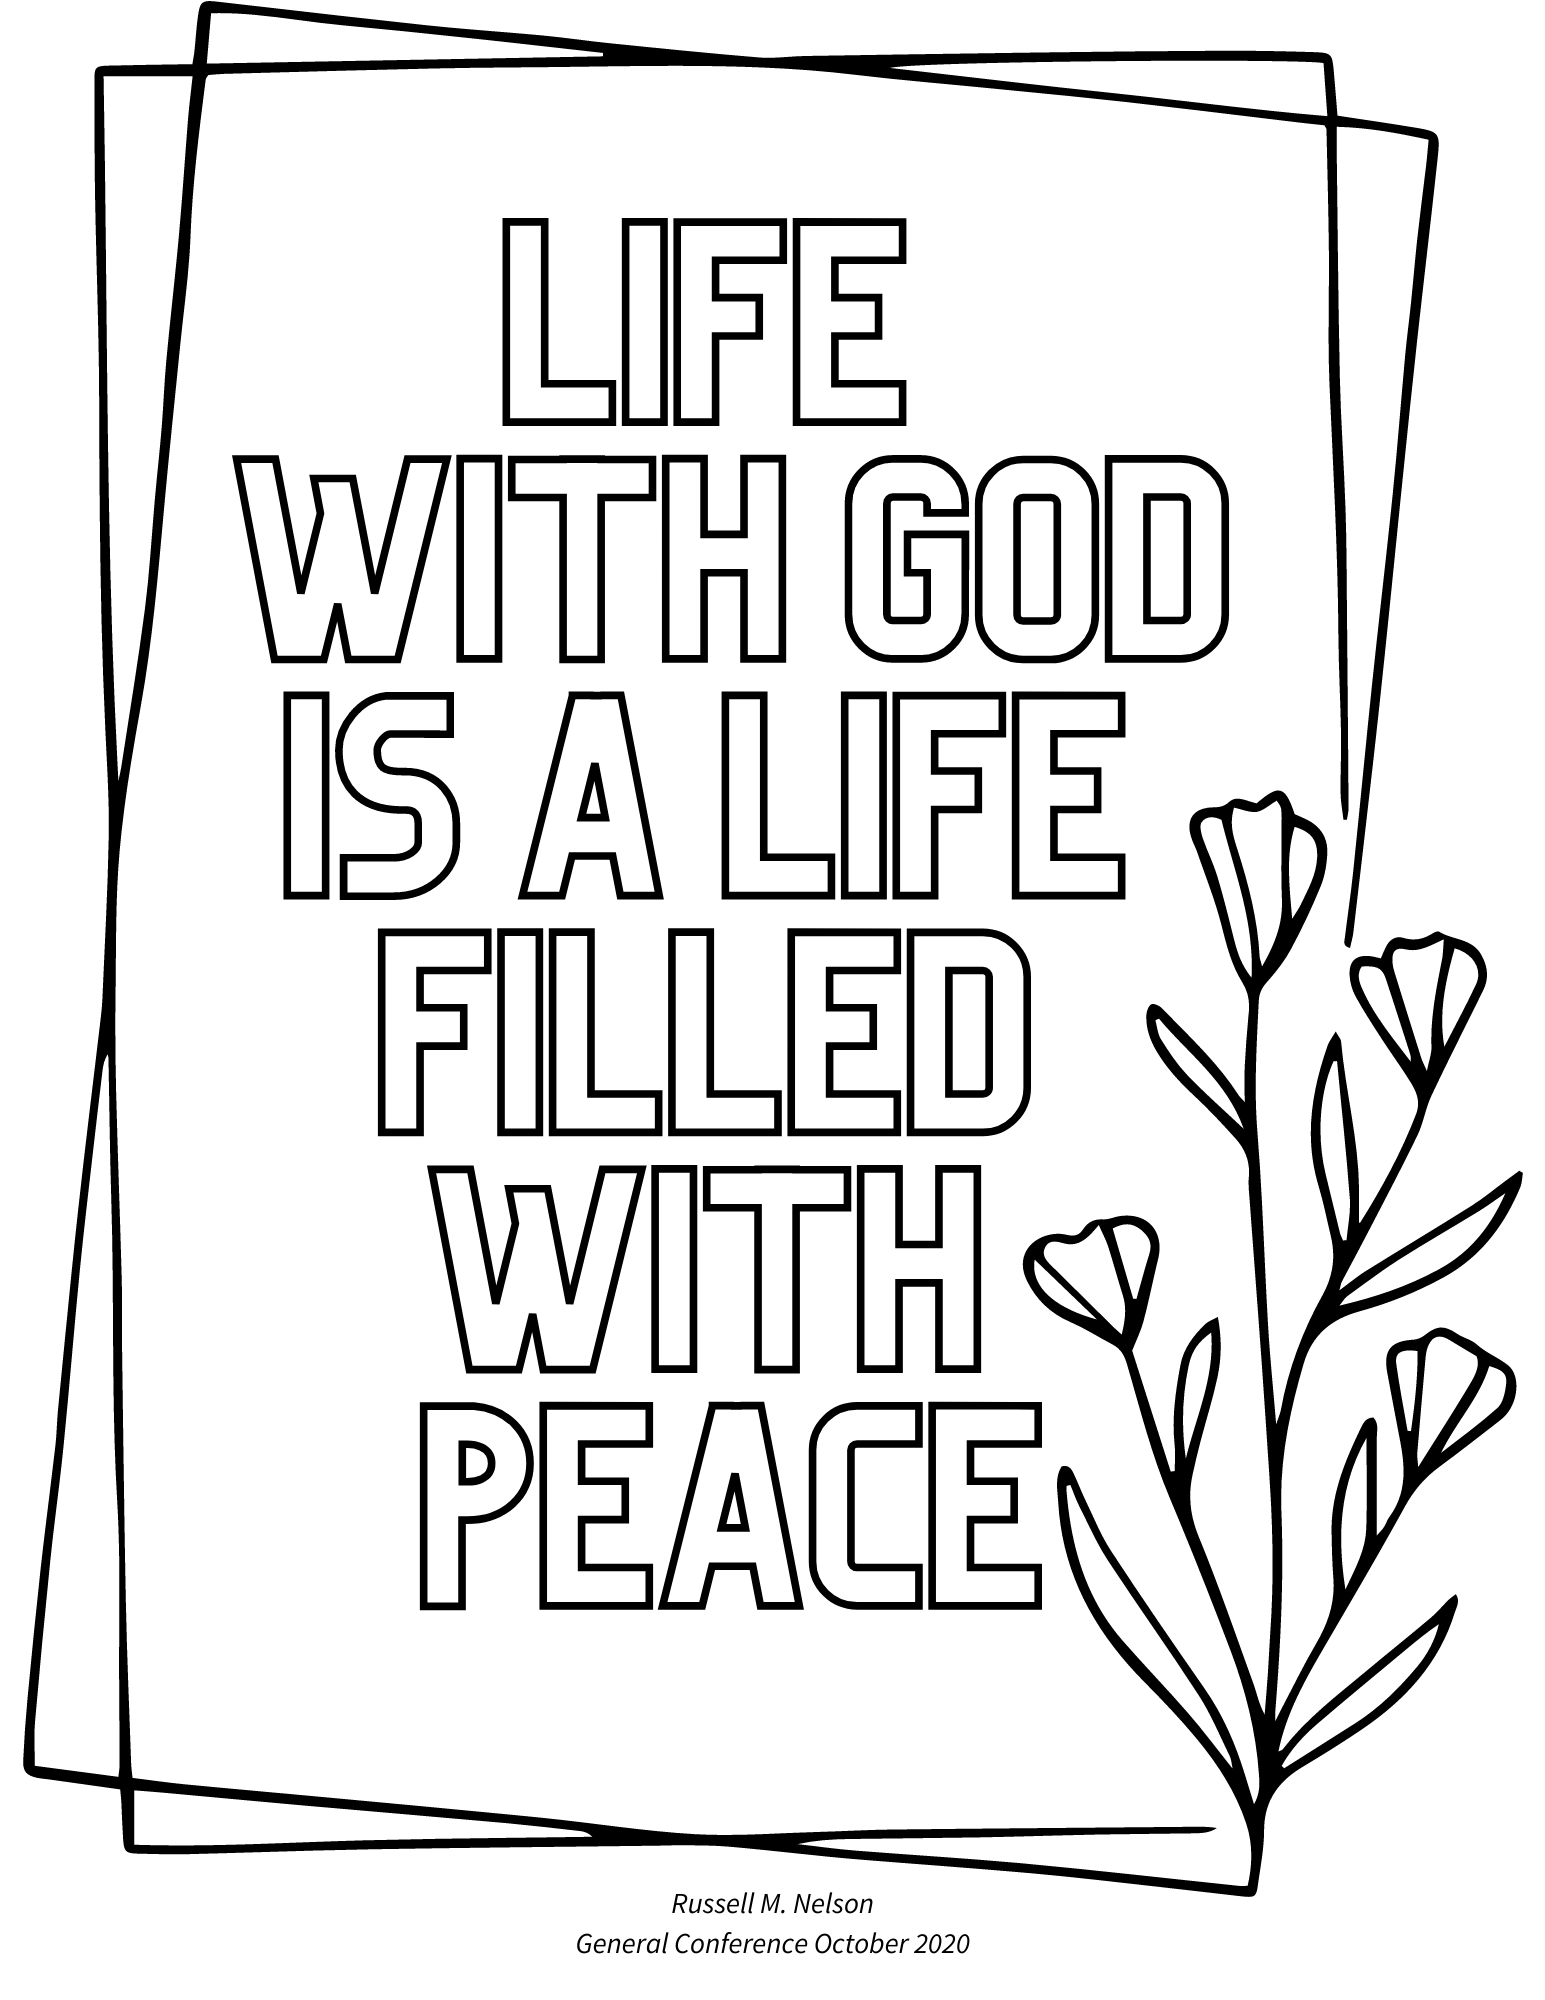 General Conference quotes, lds quotes, russell m nelson quotes, free printables, coloring pages